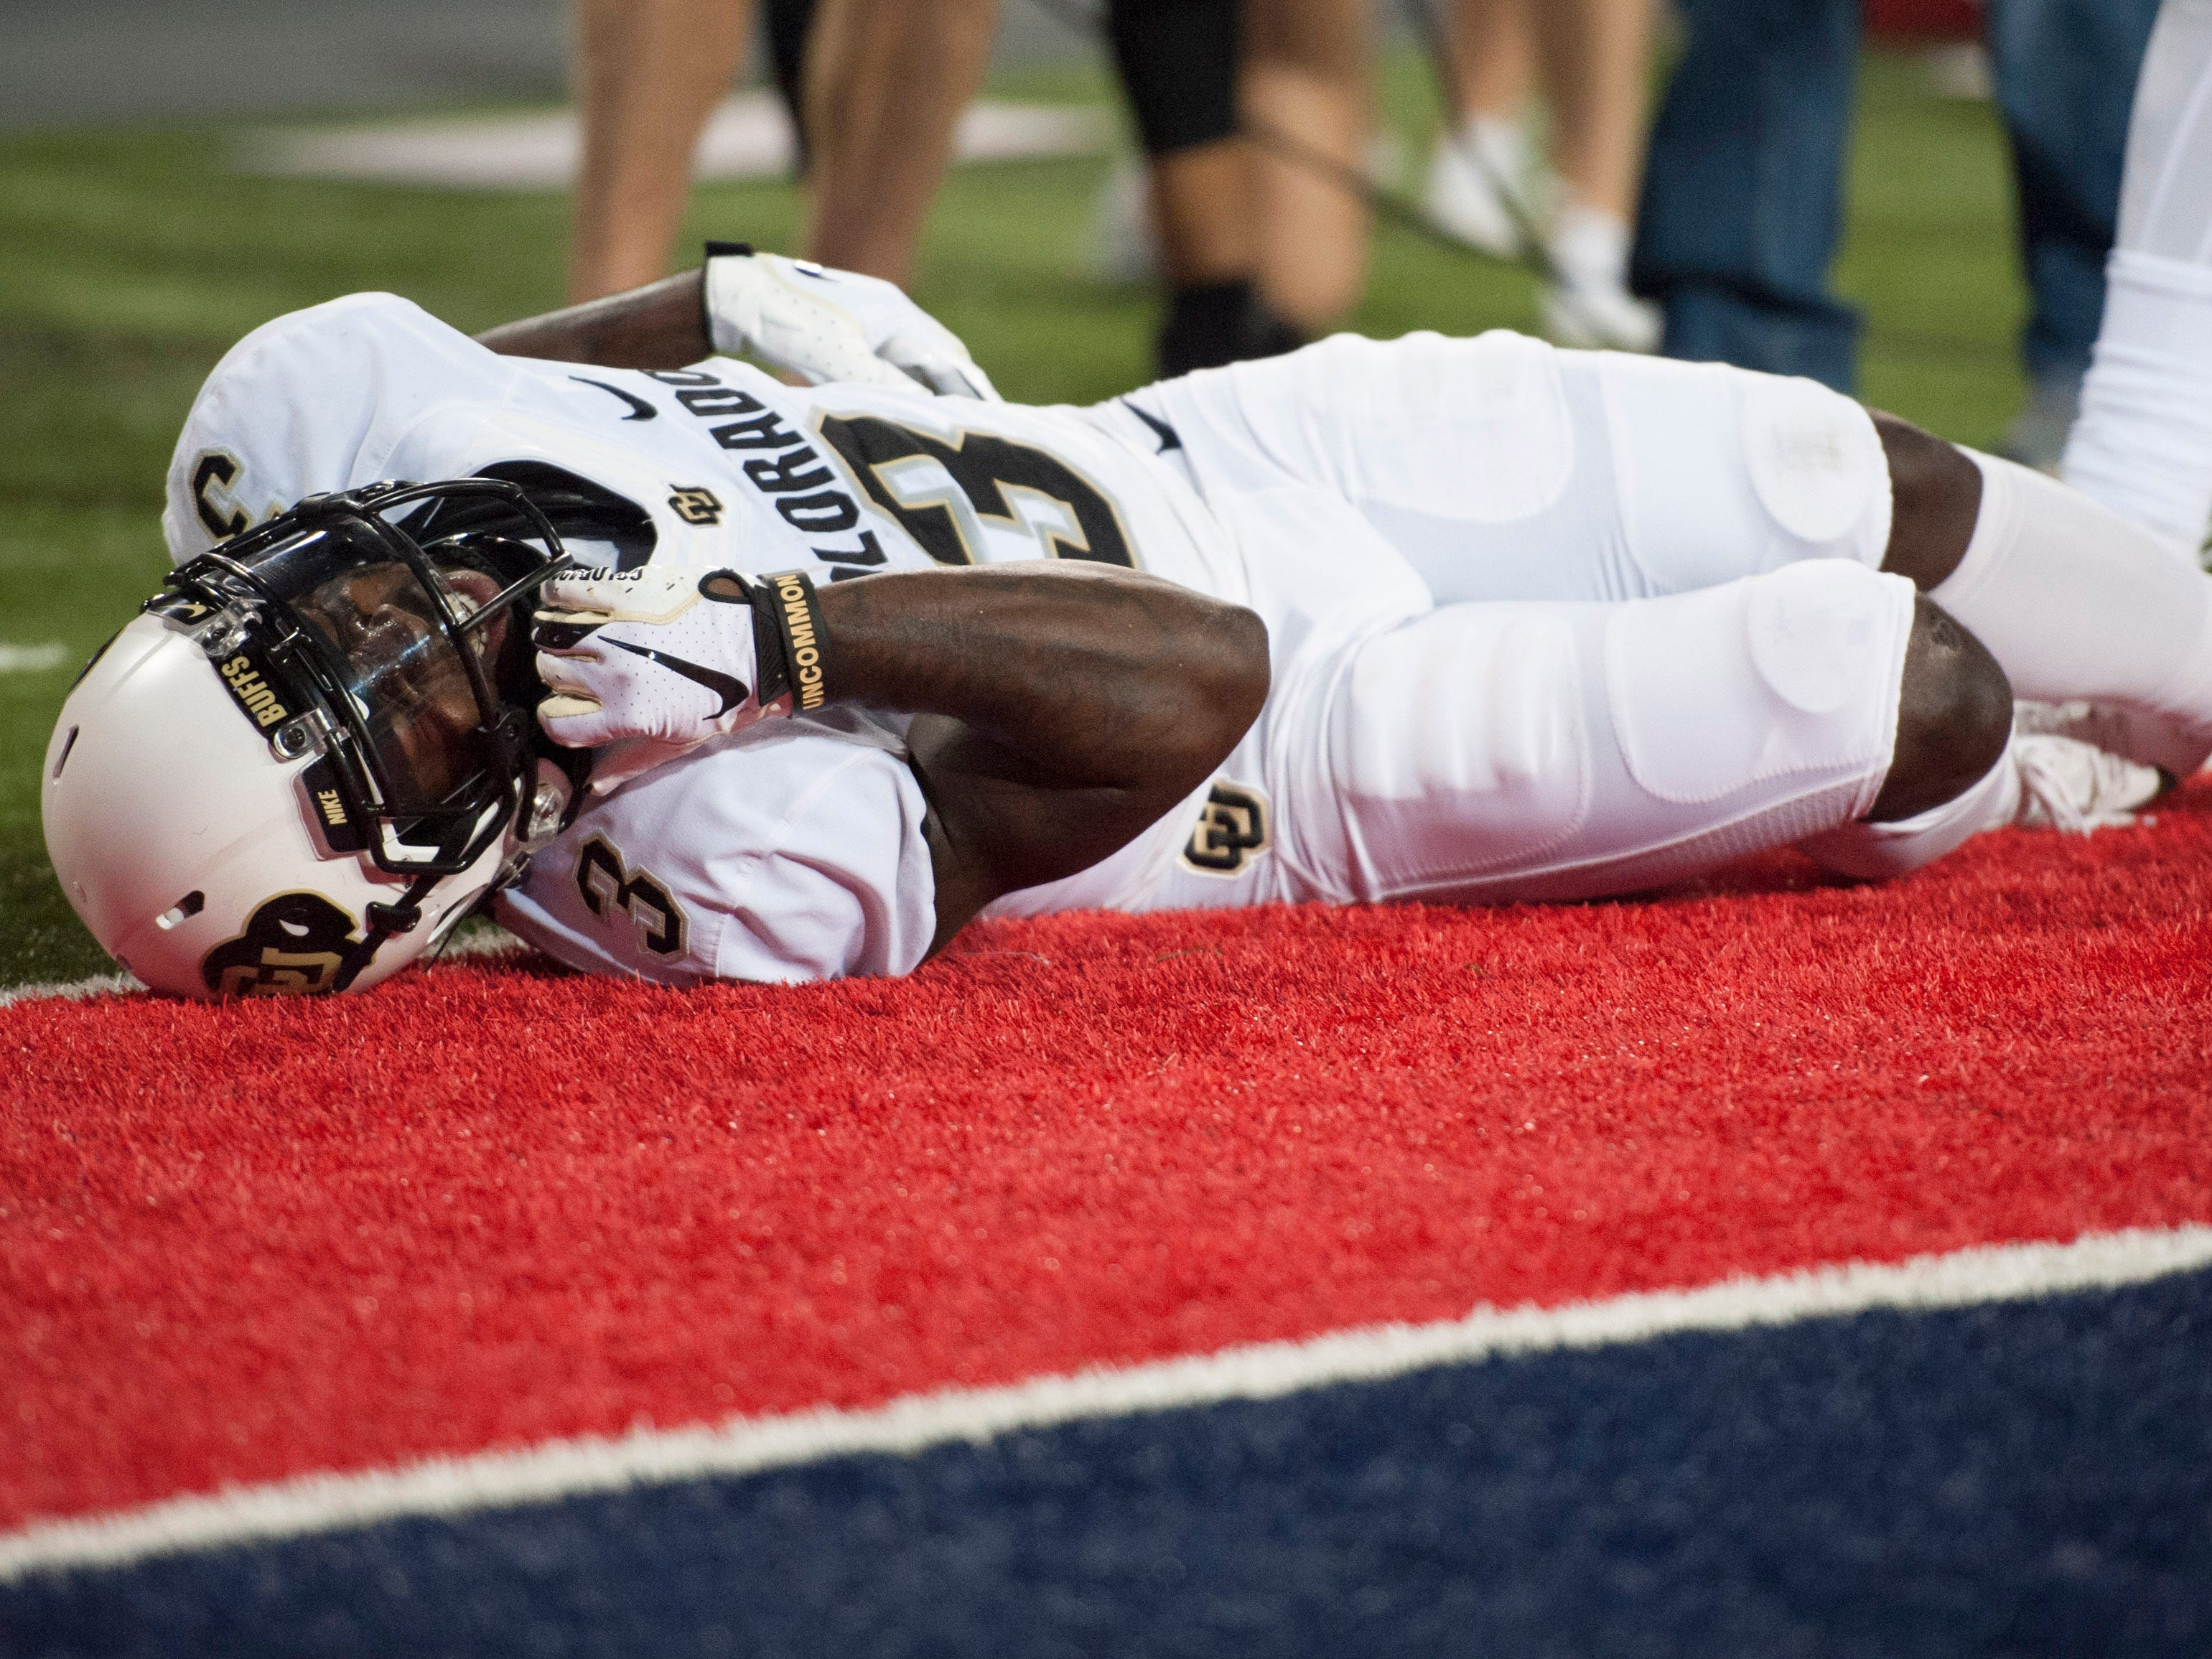 Nov 2, 2018; Tucson, AZ, USA; Colorado Buffaloes wide receiver K.D. Nixon (3) lays on the field after scoring a touchdown against the Arizona Wildcats during the first half at Arizona Stadium.